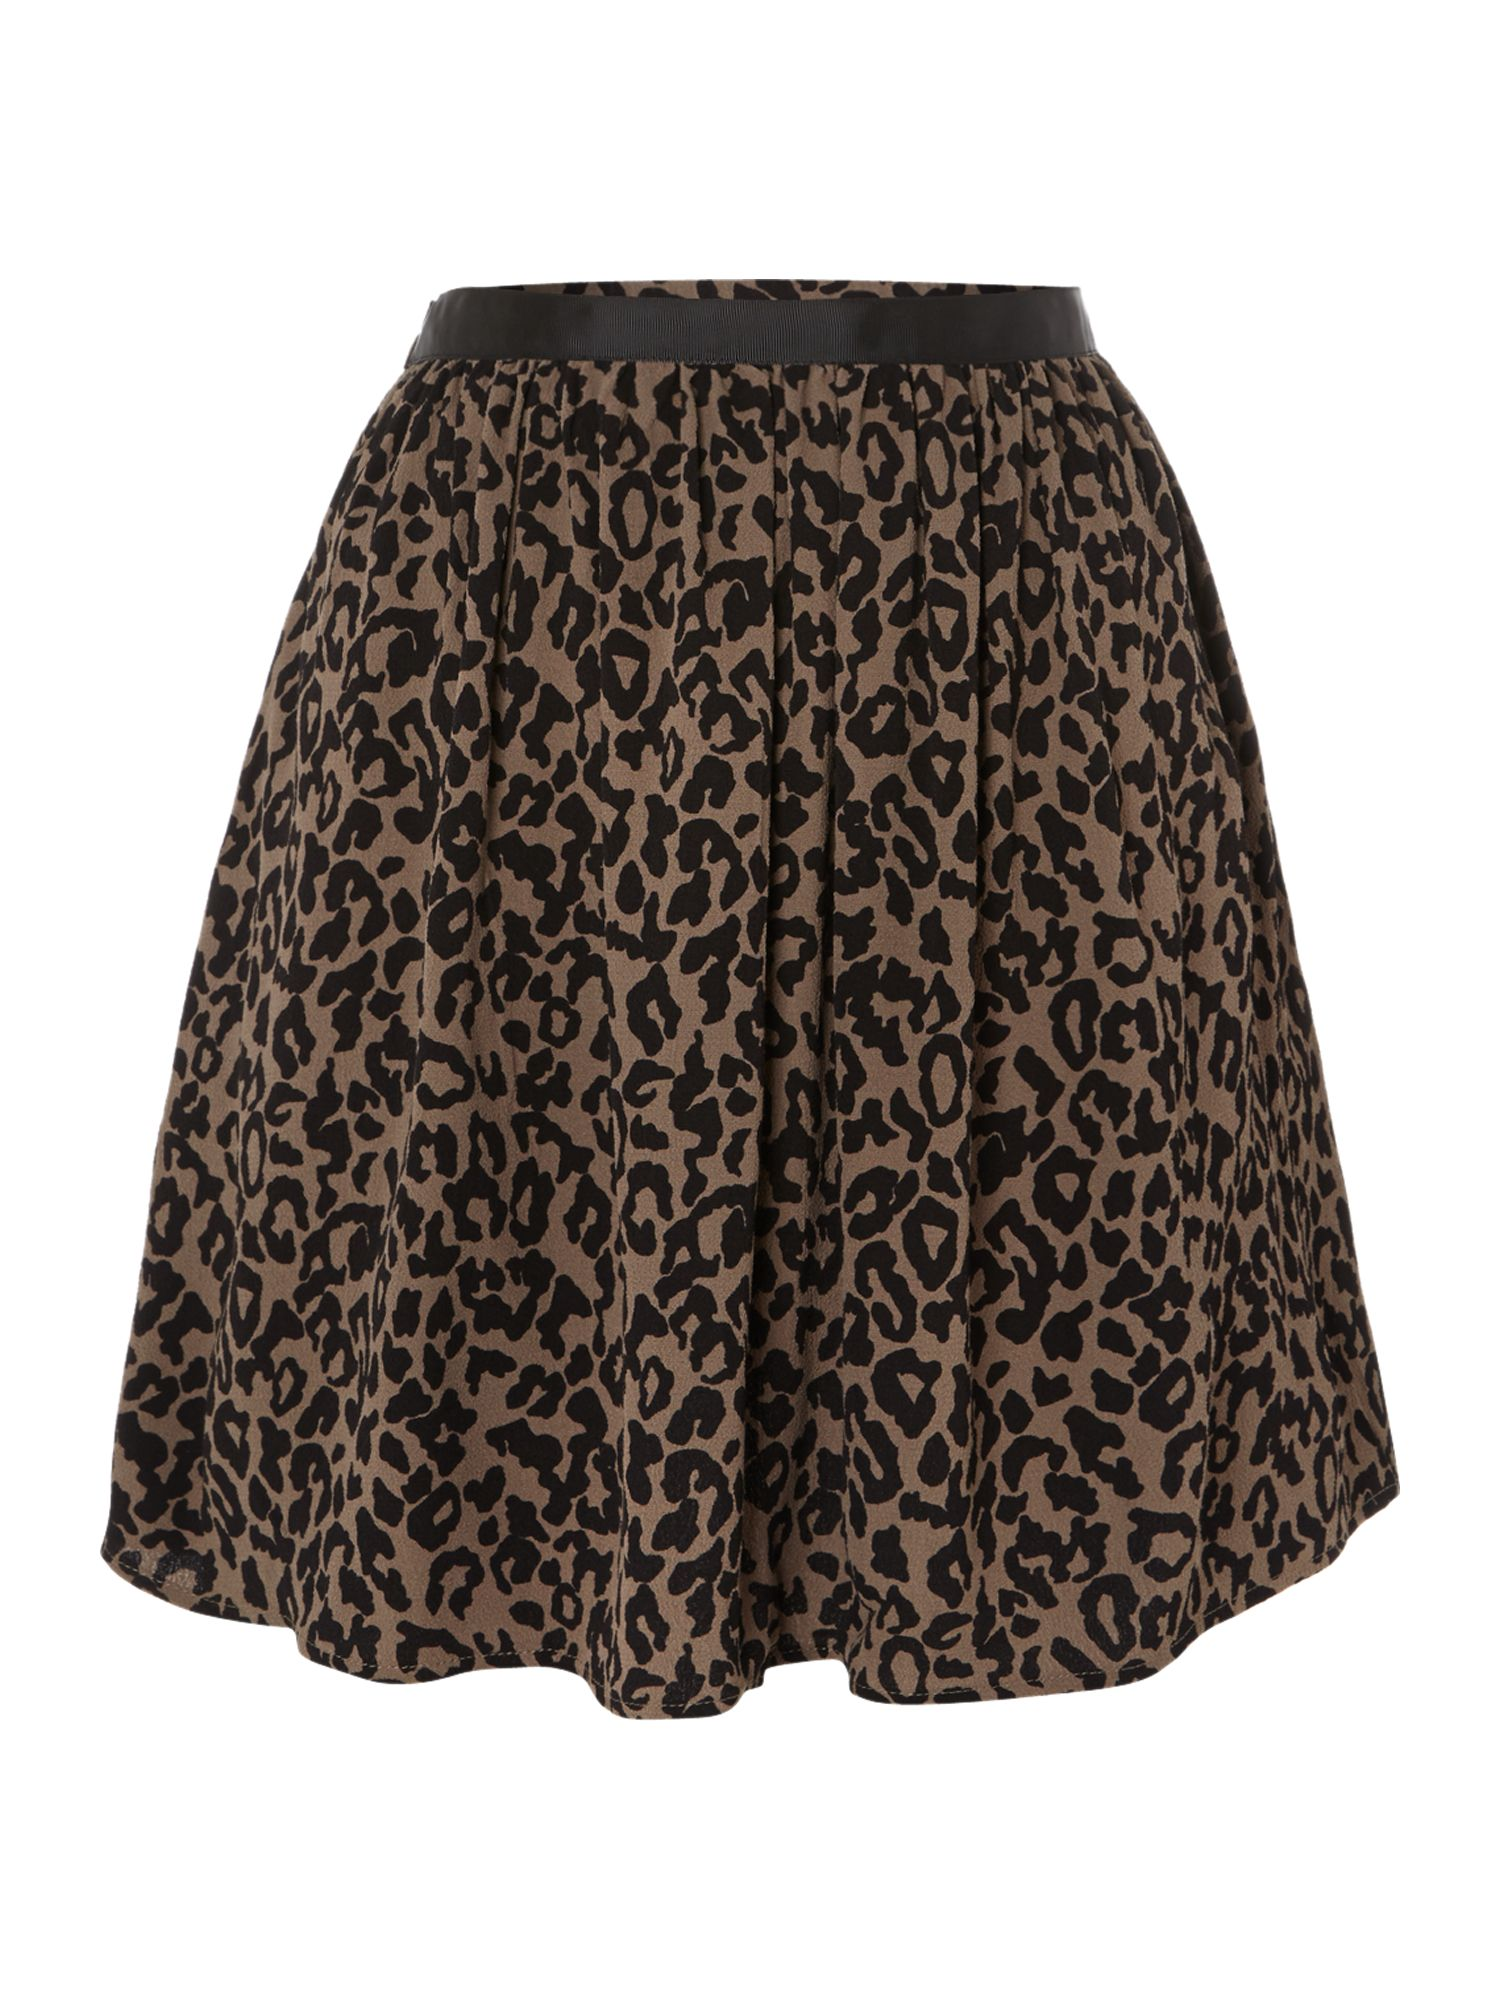 Mini leopard skater skirt